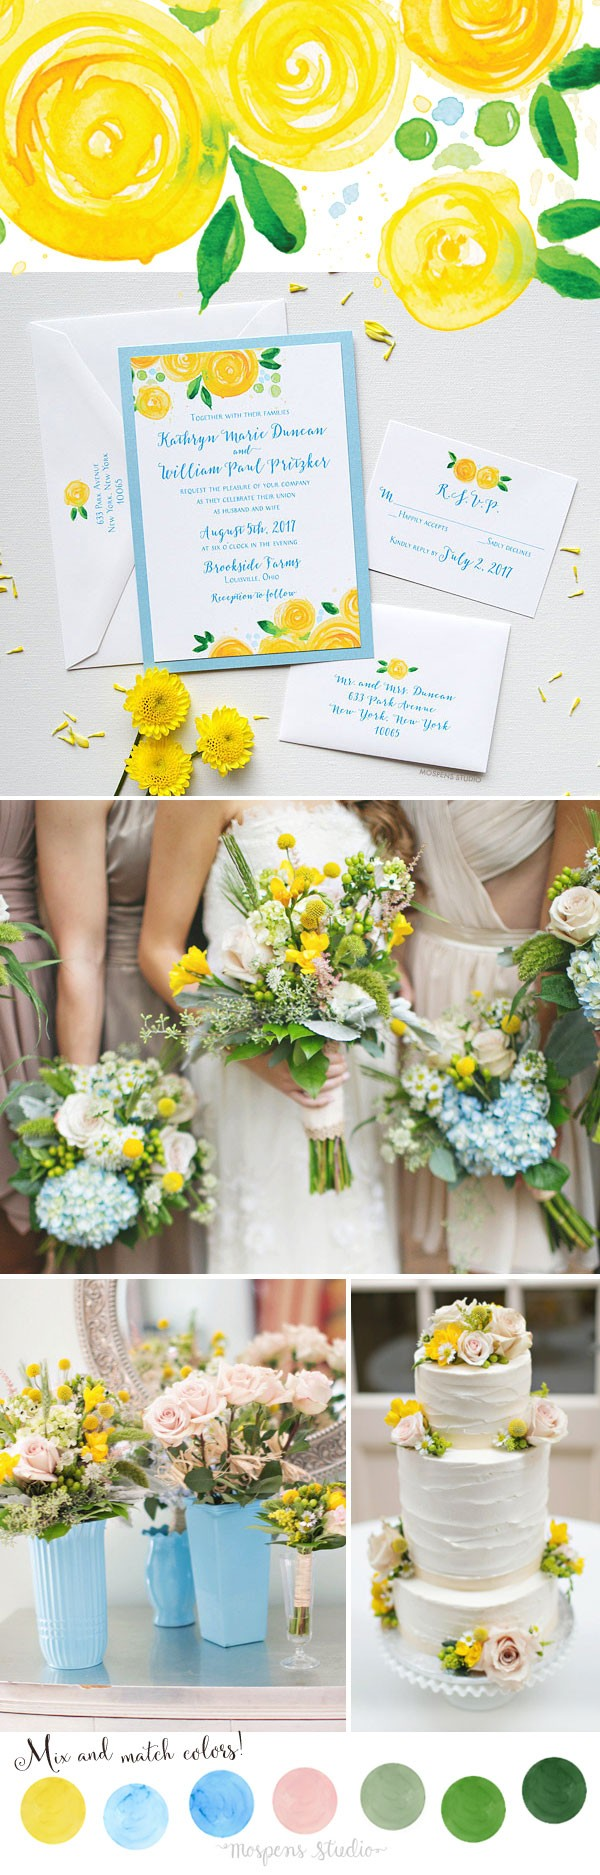 Like But I Think You 39 Ll Agree That This Is A Beautiful Shot Of The Bride With Her Bridesmaids Pale Blue Dresses Matched Yellow